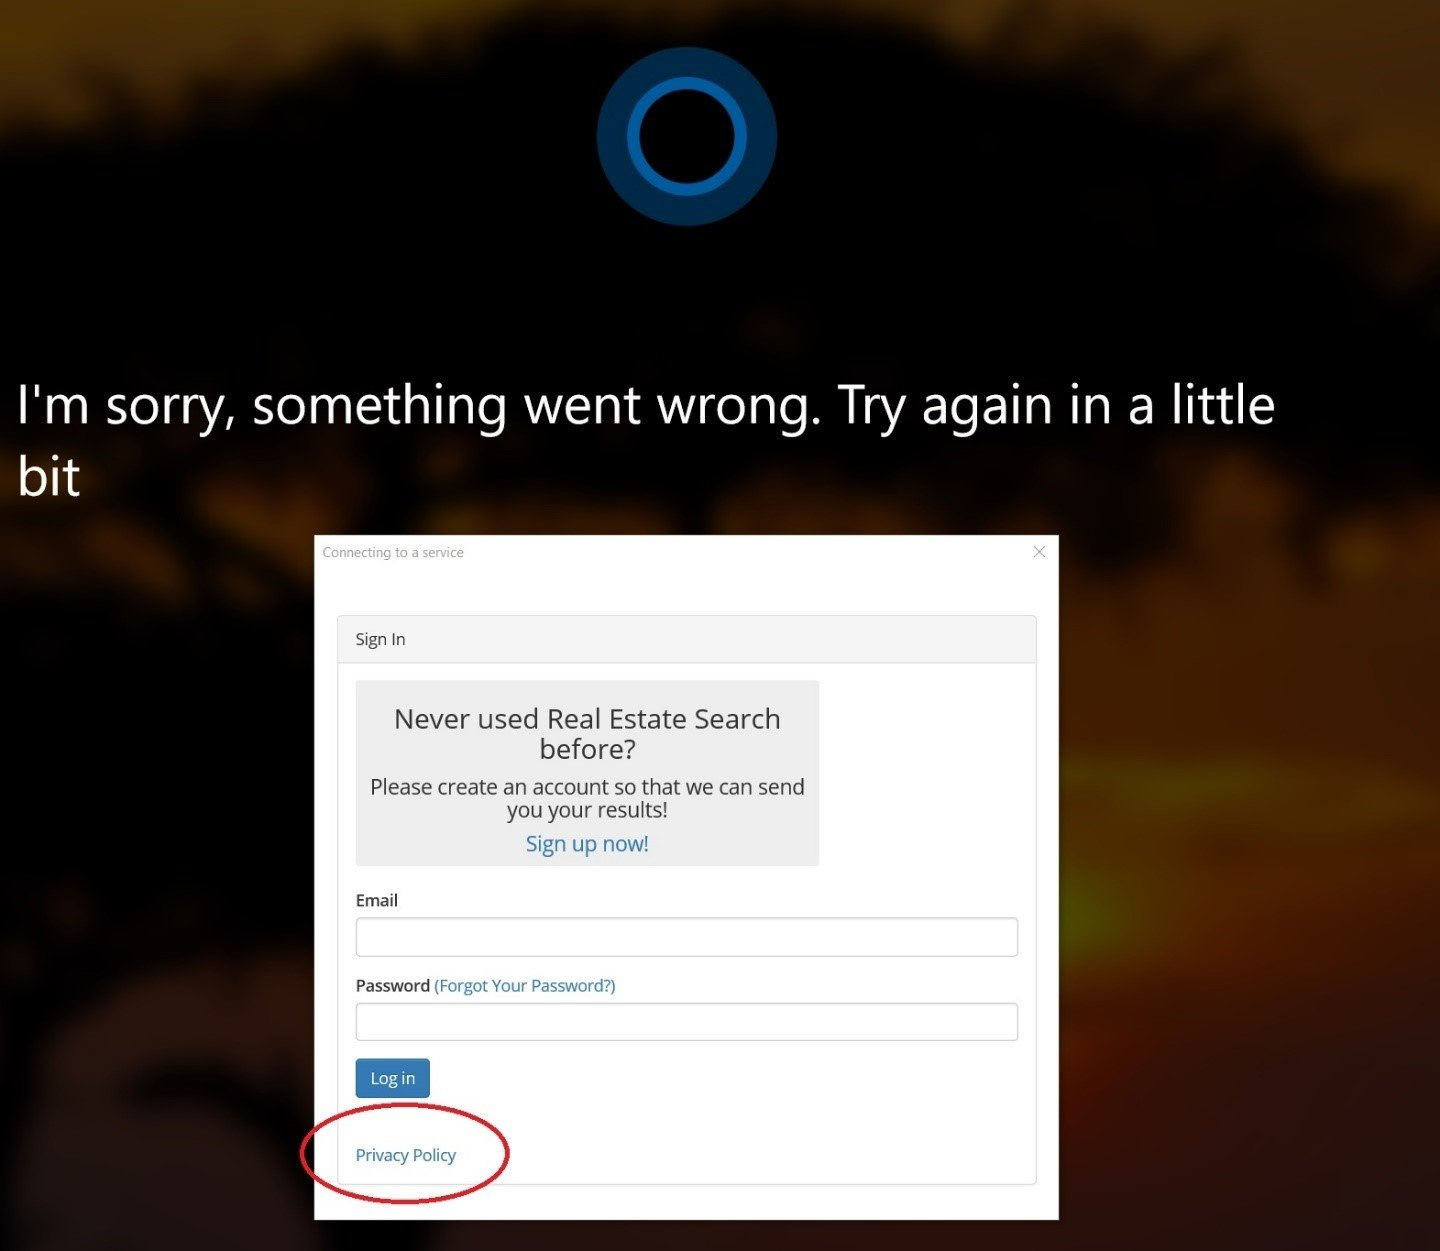 McAfee discovers new Windows 10 Cortana vulnerabilities that could manipulate locked systems cortana-bug.jpg